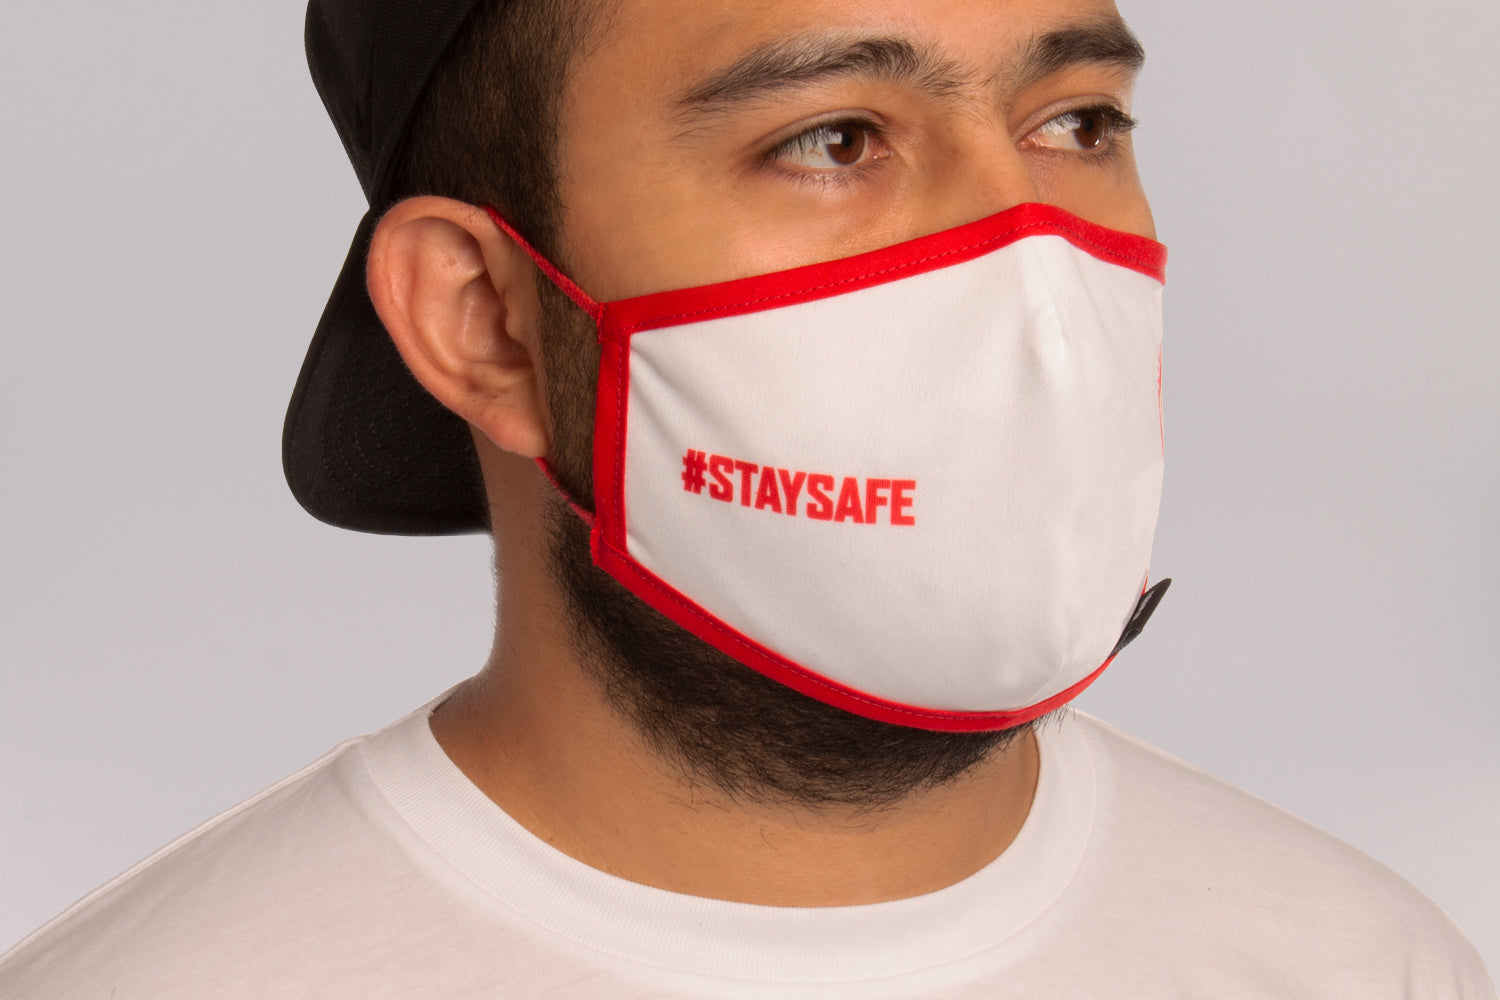 Mascarilla #STAYSAFE